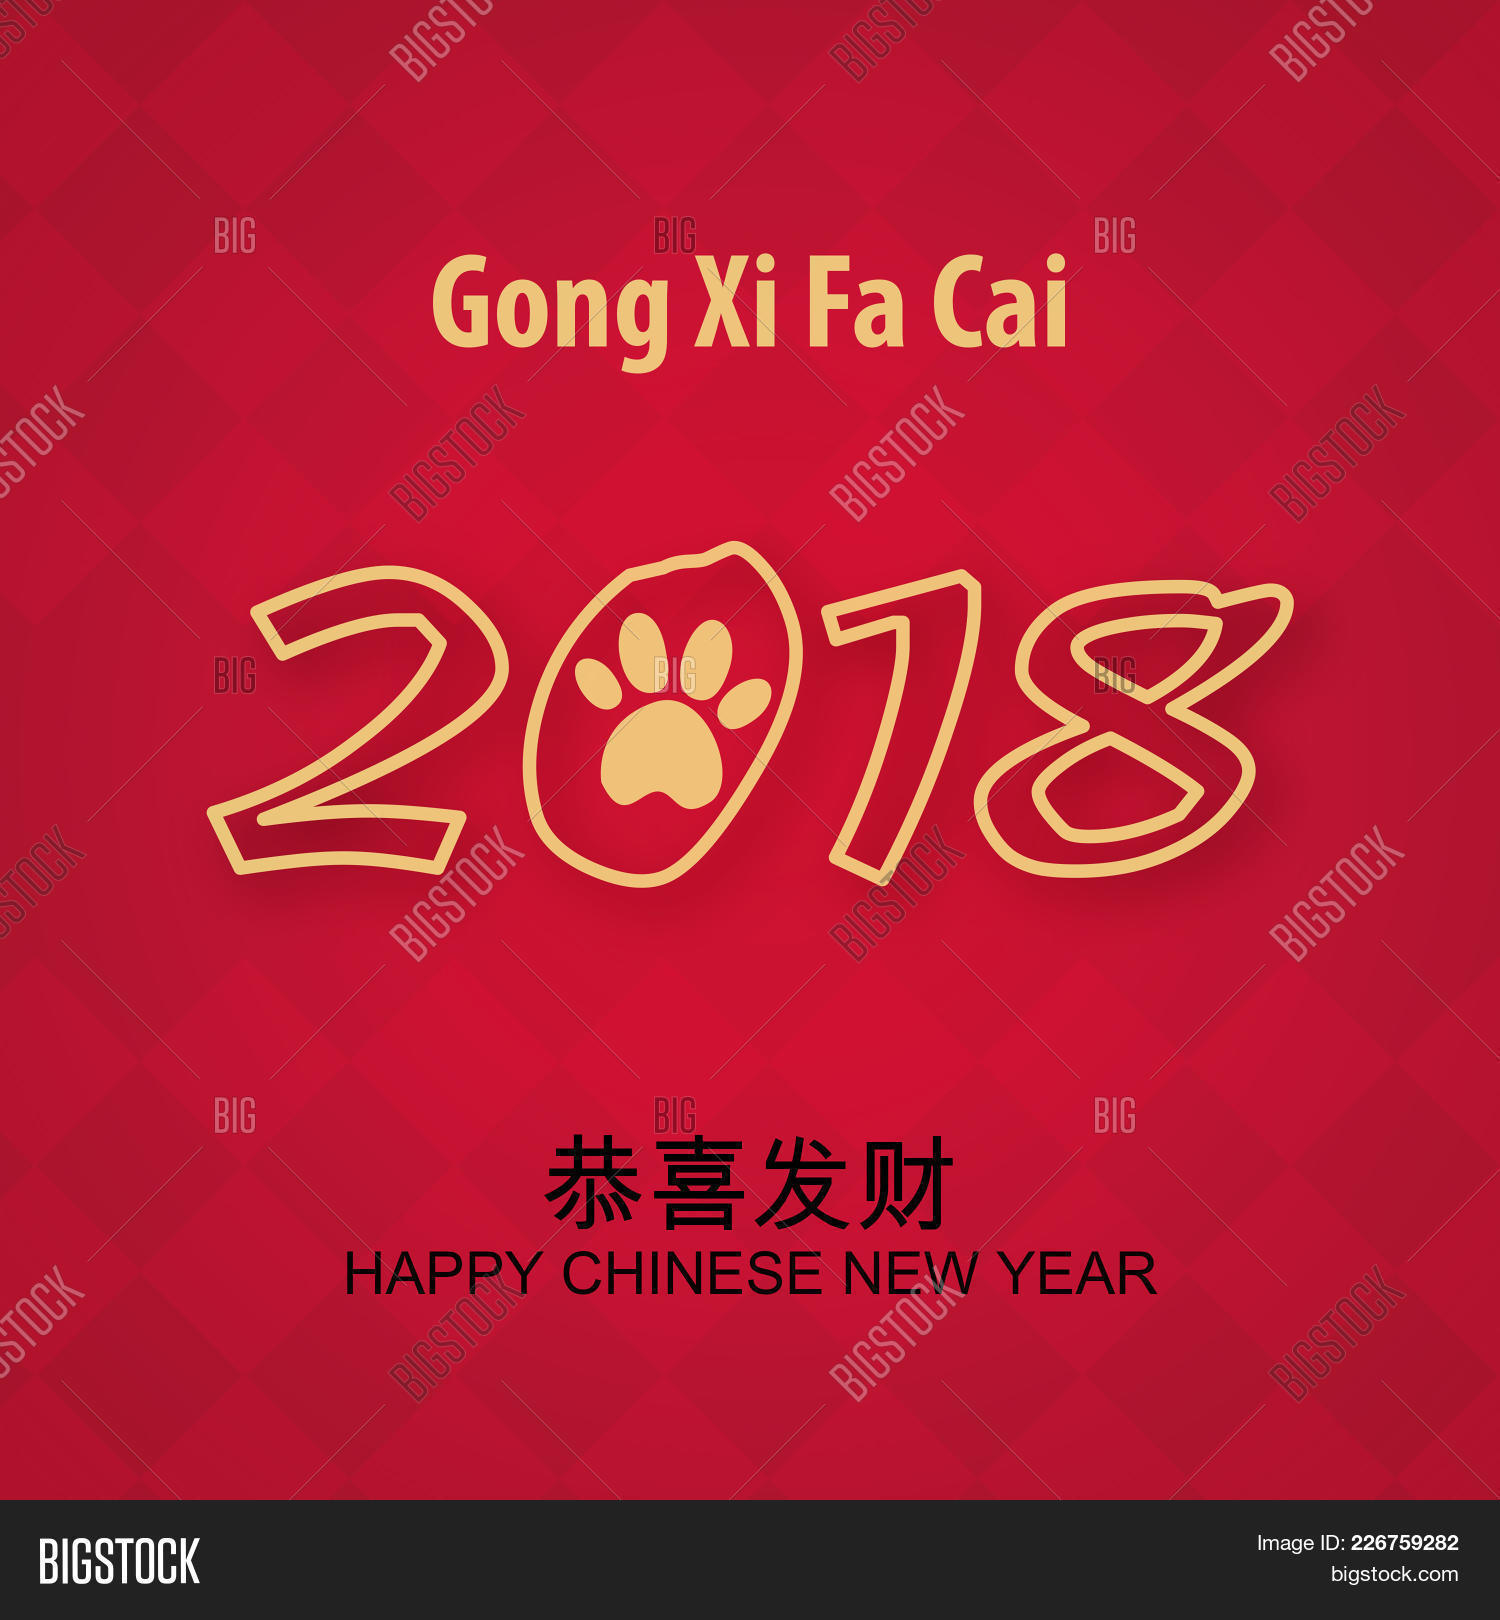 Chinese new year image photo free trial bigstock chinese new year greeting card design chinese translation gong xi fa cai m4hsunfo